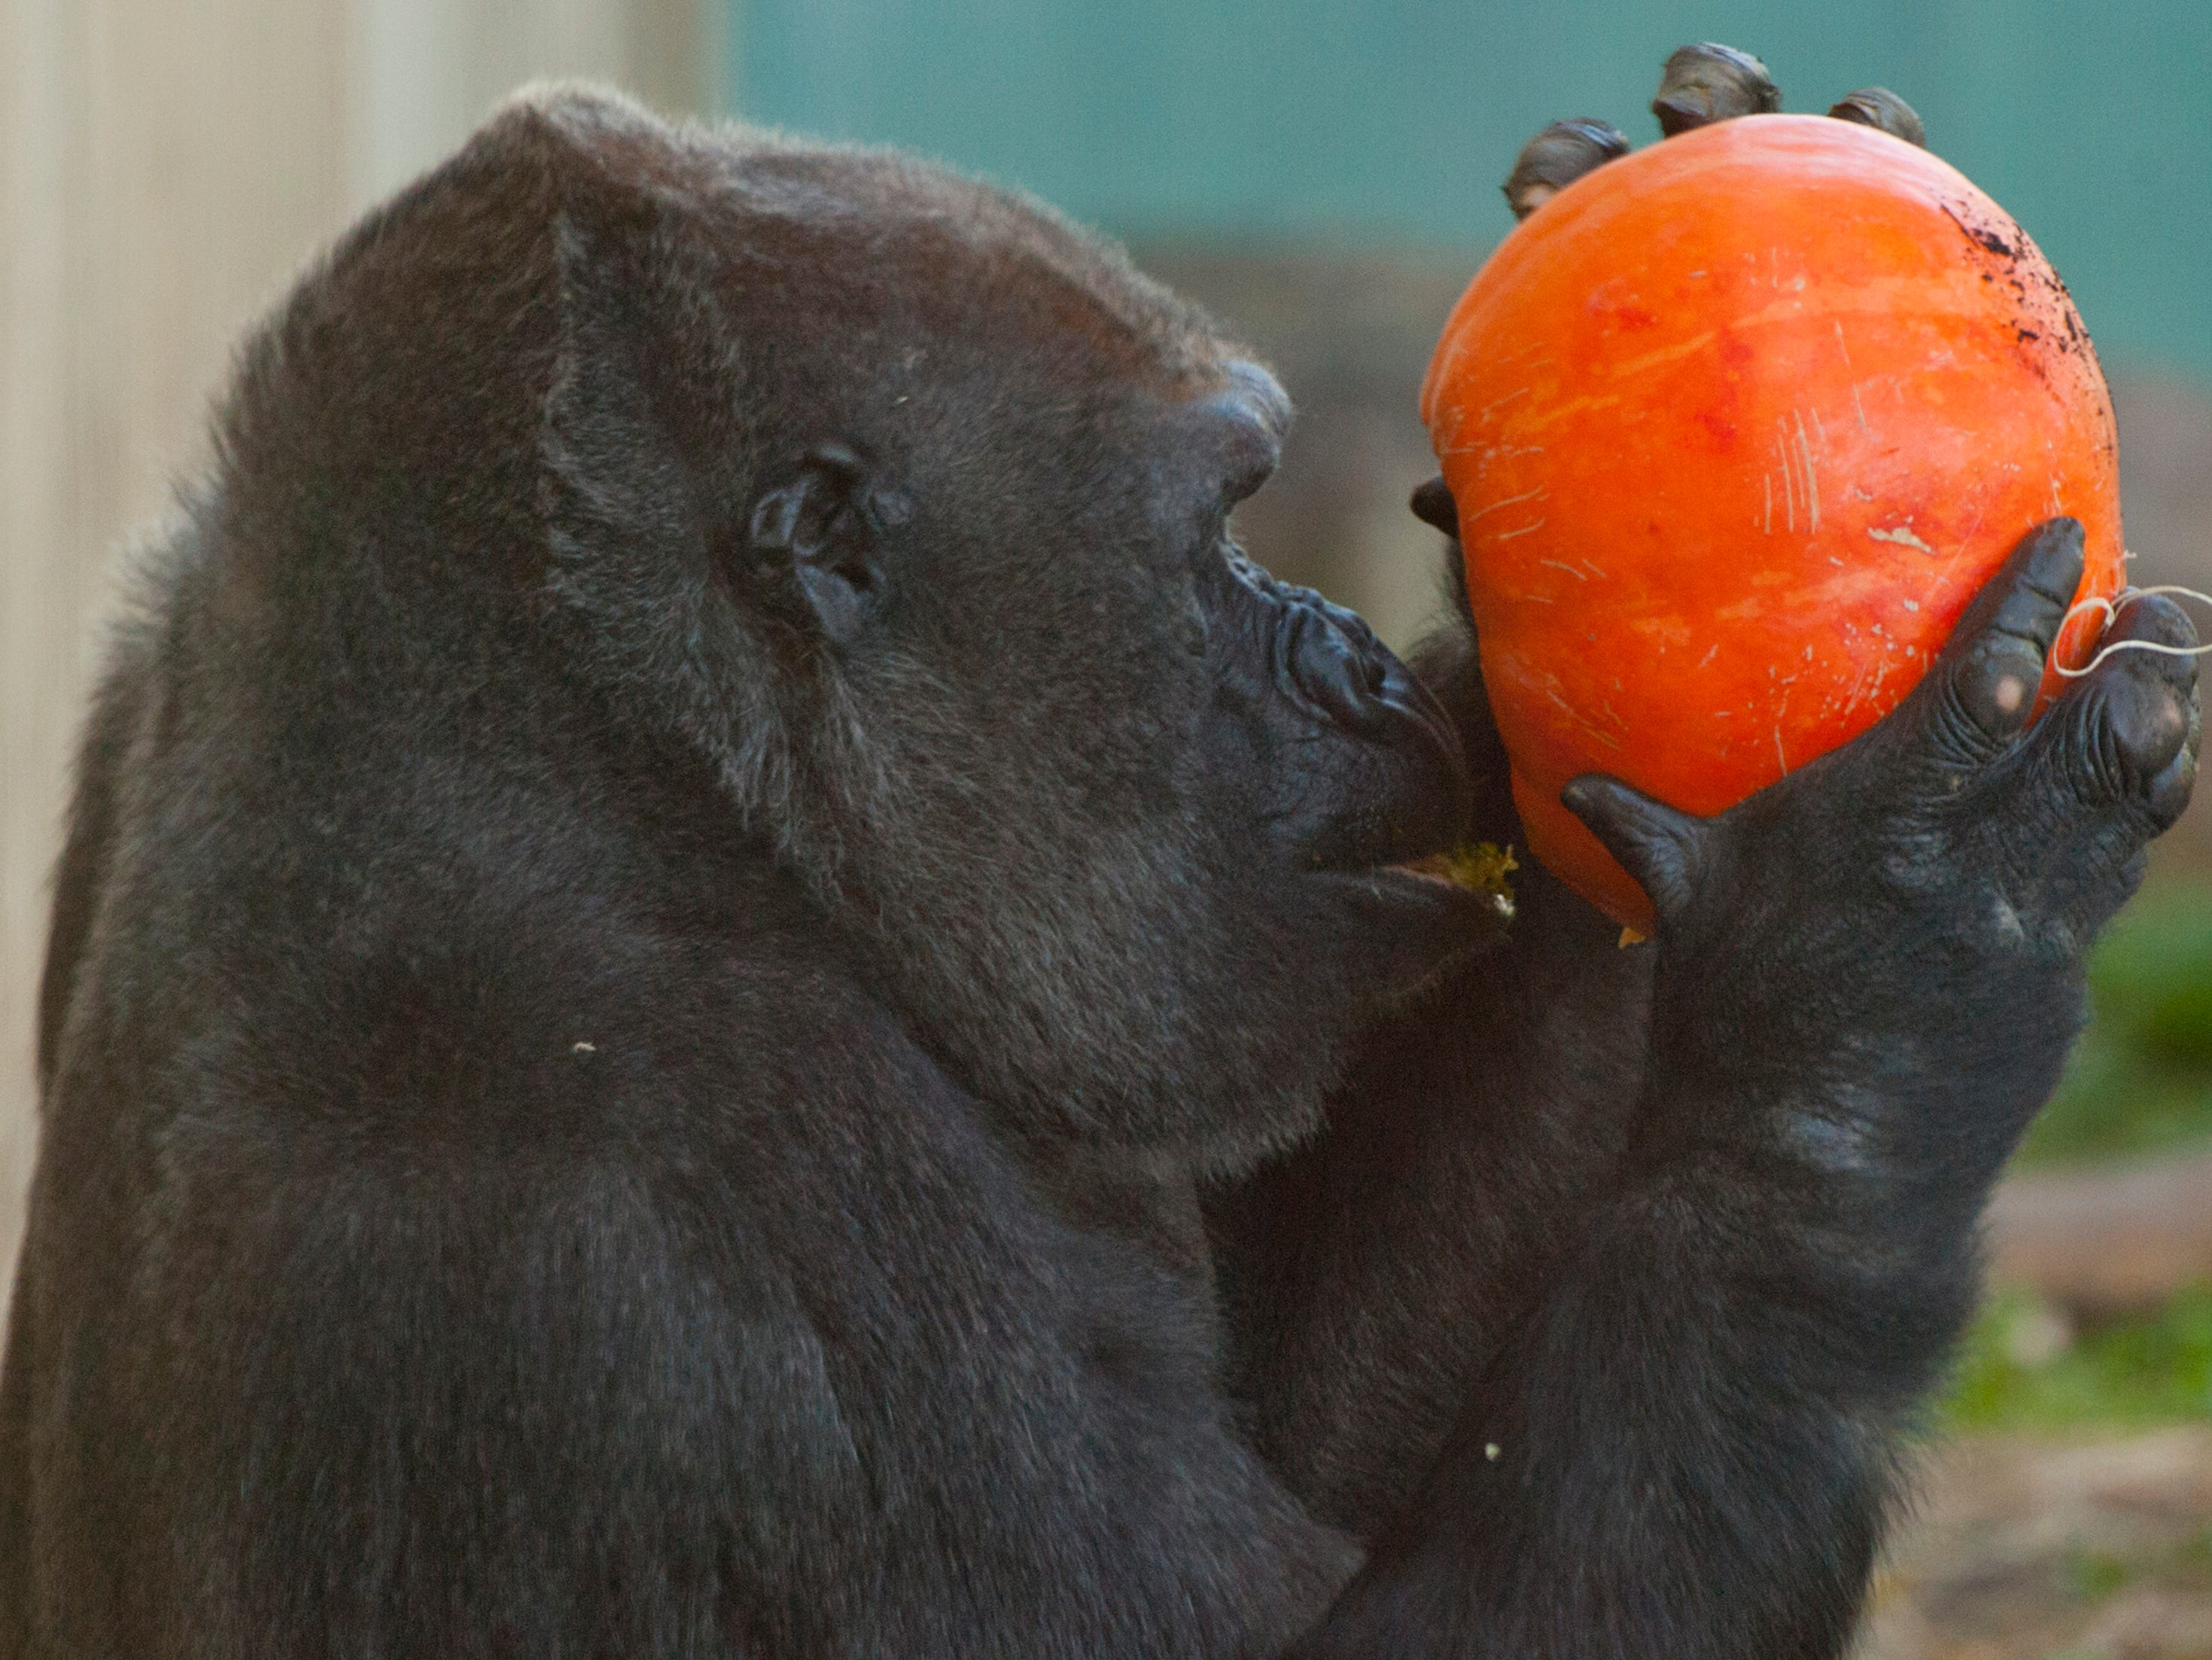 Kwelt, a Western lowland gorilla checks out a pumpkin with her surrogate daughter, Kindy, age 2,  during the Louisville Zoo's annual pumpkin smash. The pumpkins being fed to the animals are from the zoo's Halloween event. November 04, 2018